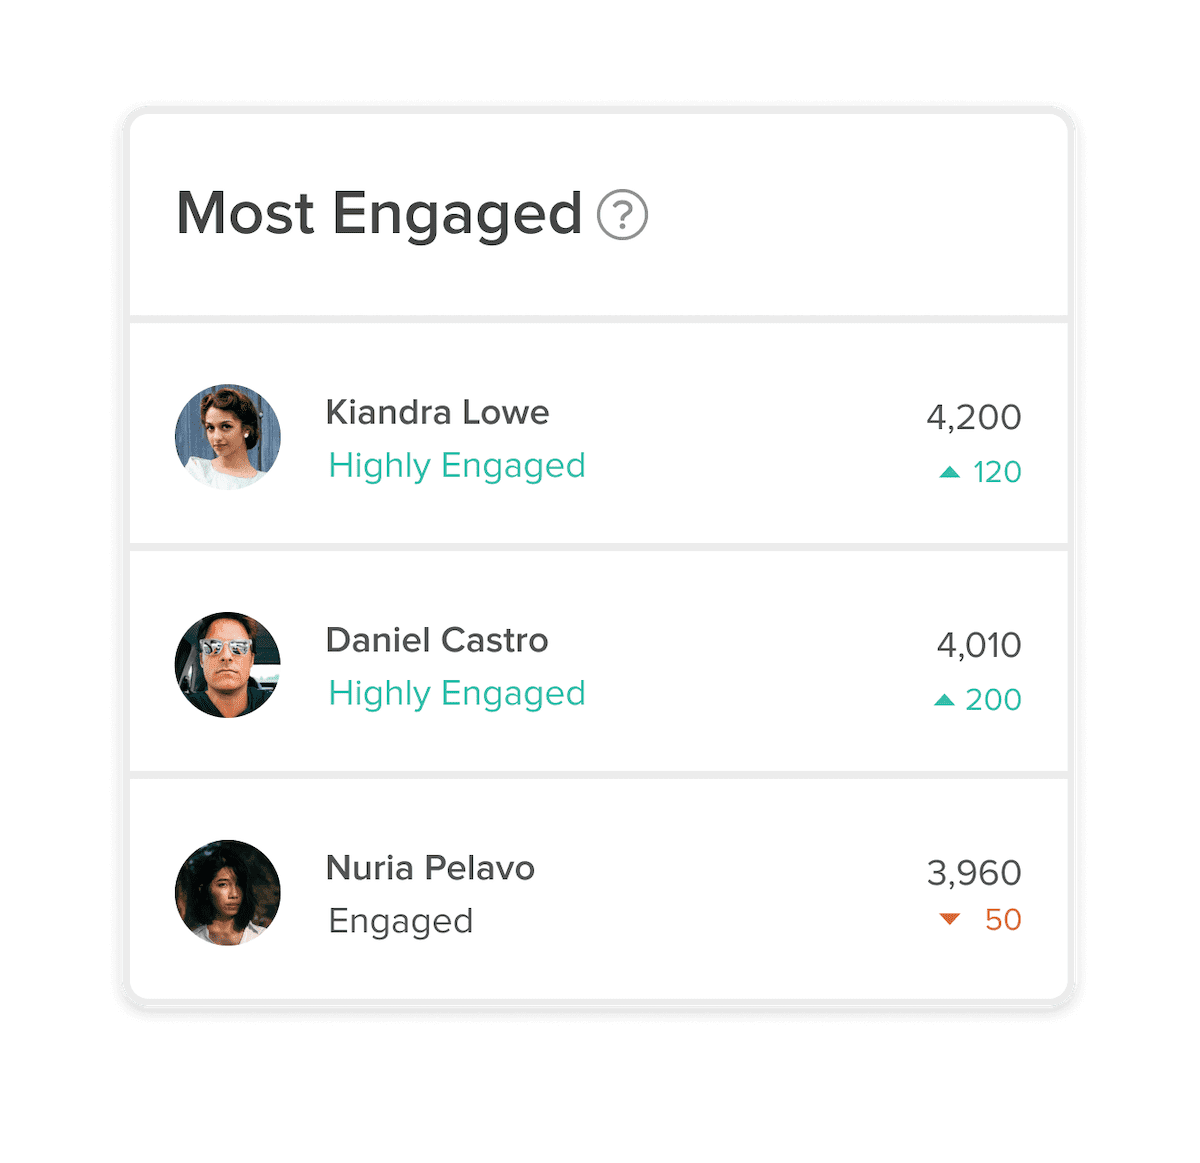 Employee Engagement stats at a glance